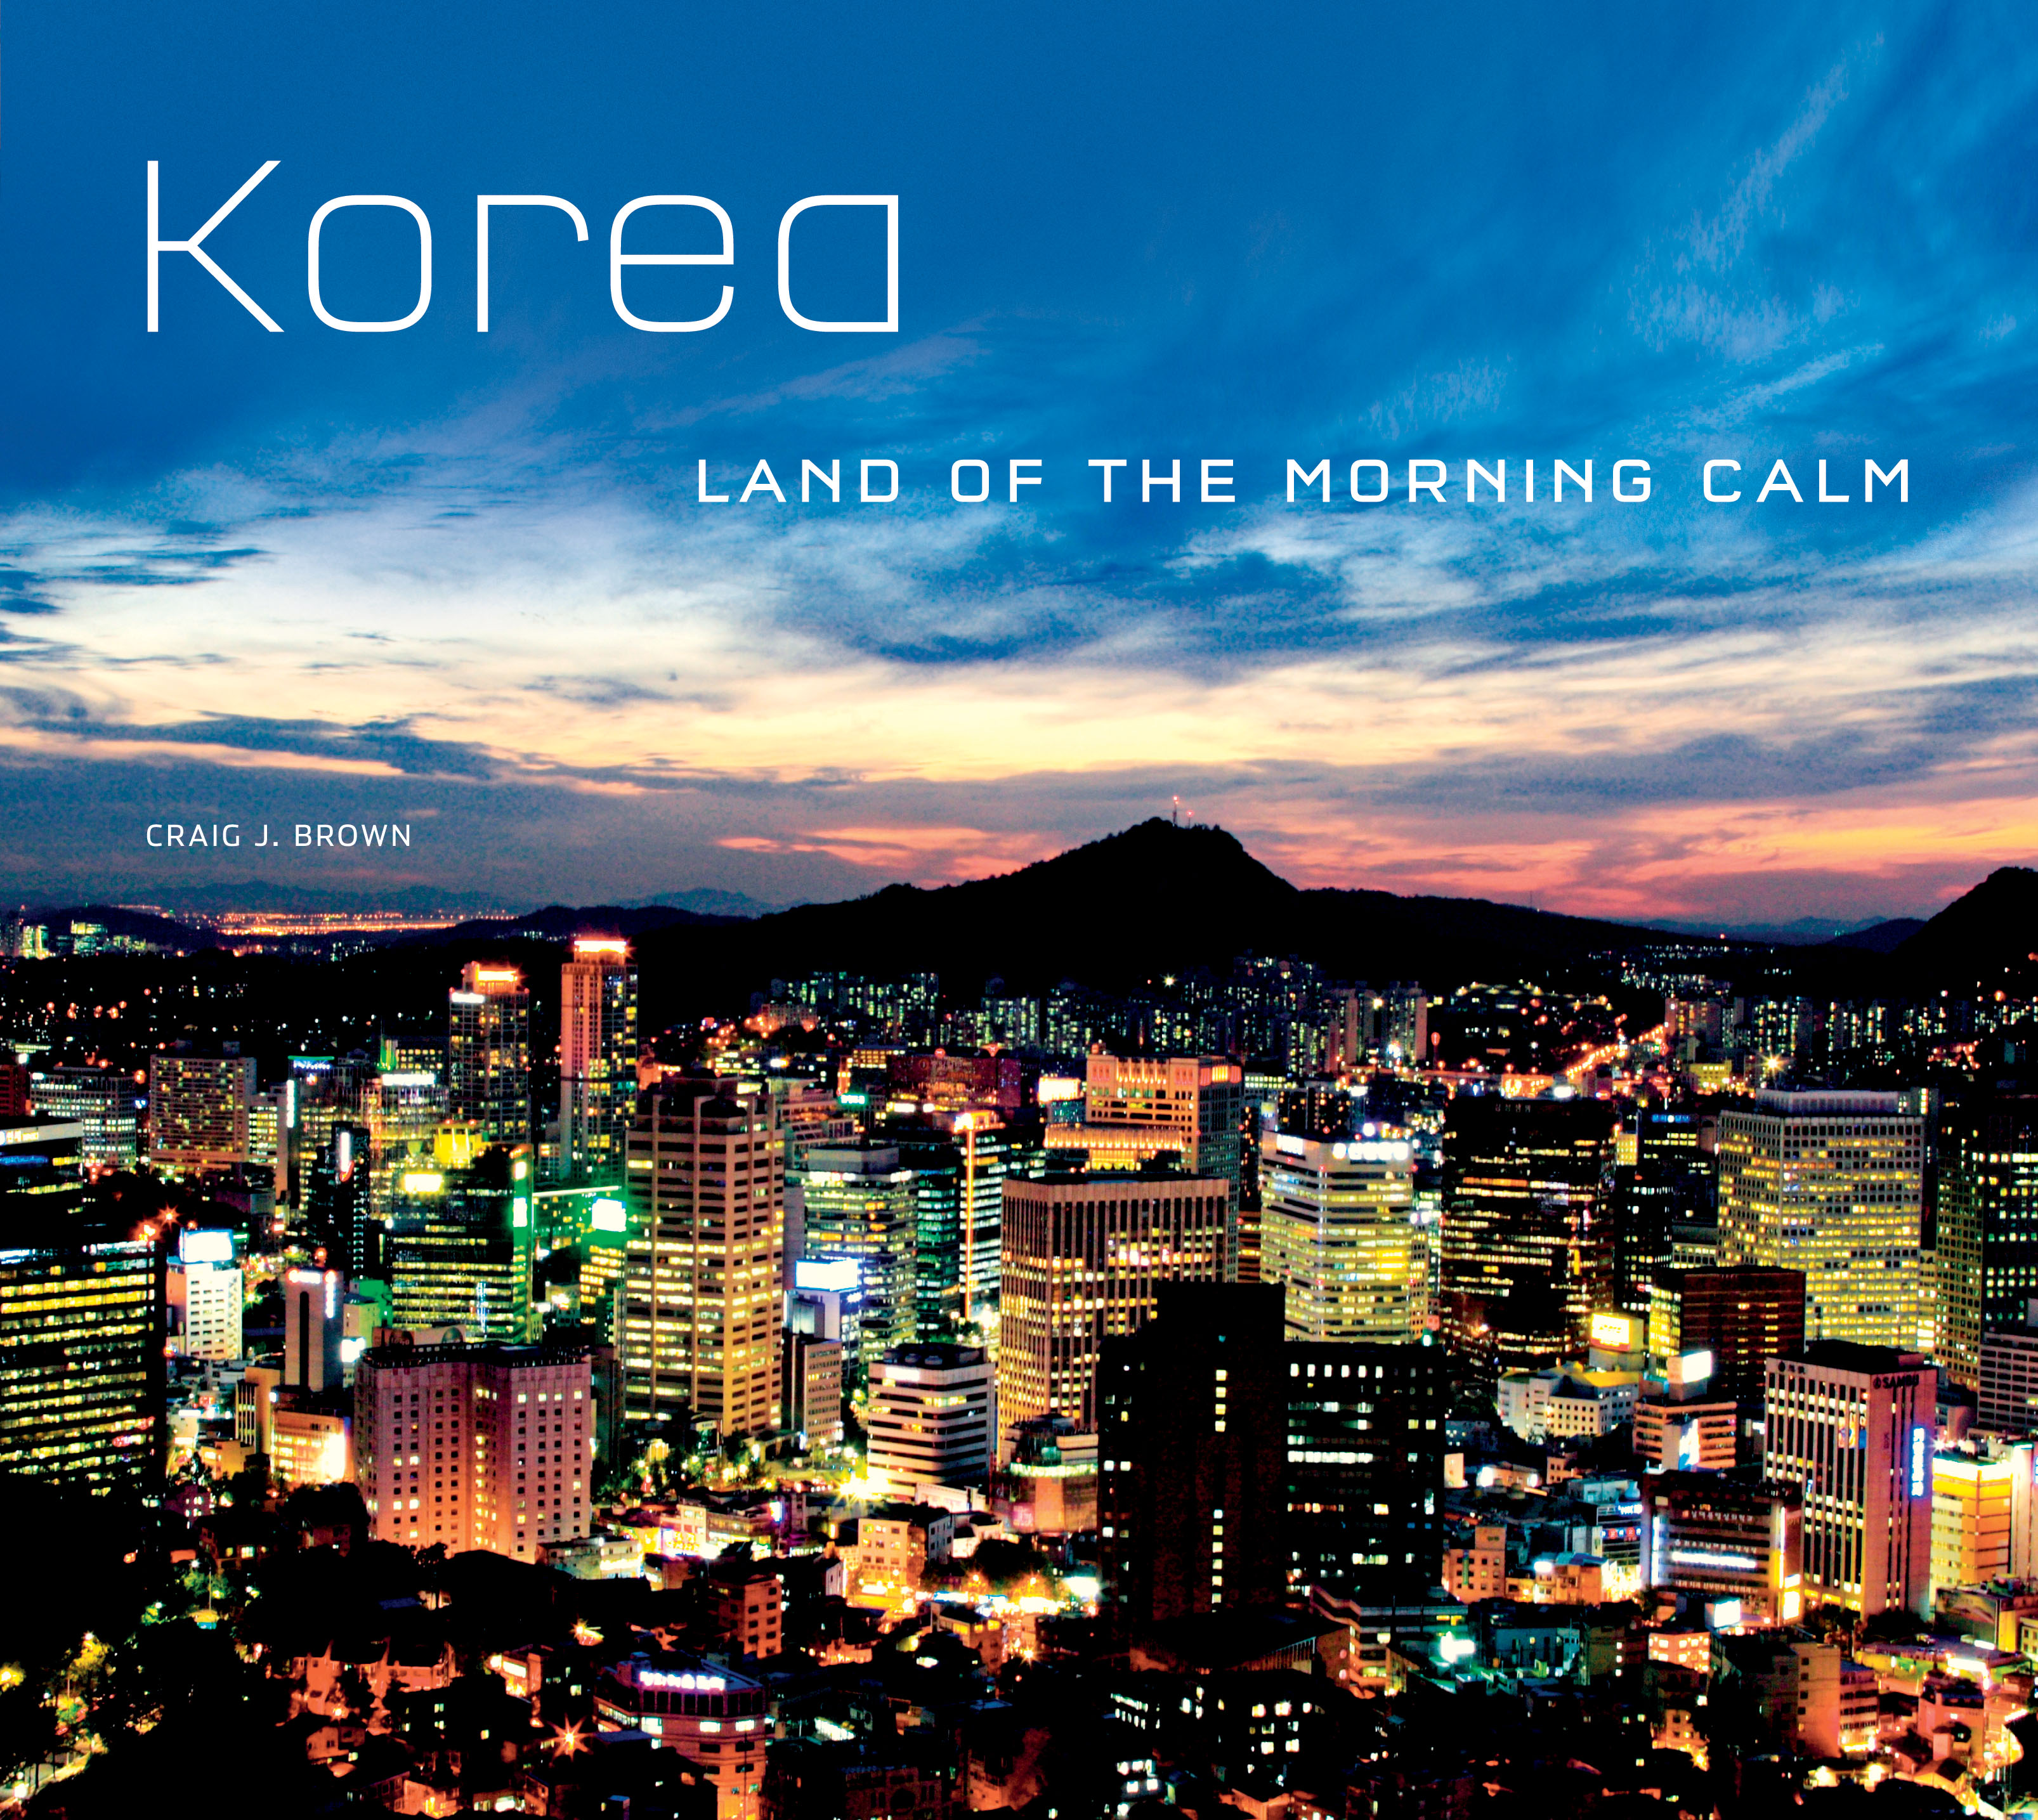 an overview of korea as the land of the morning calm and the unique elements of culture In the land of the morning calm a record of my journey teaching and learning in south korea as a 2014-2016 english teaching assistant and us cultural ambassador.